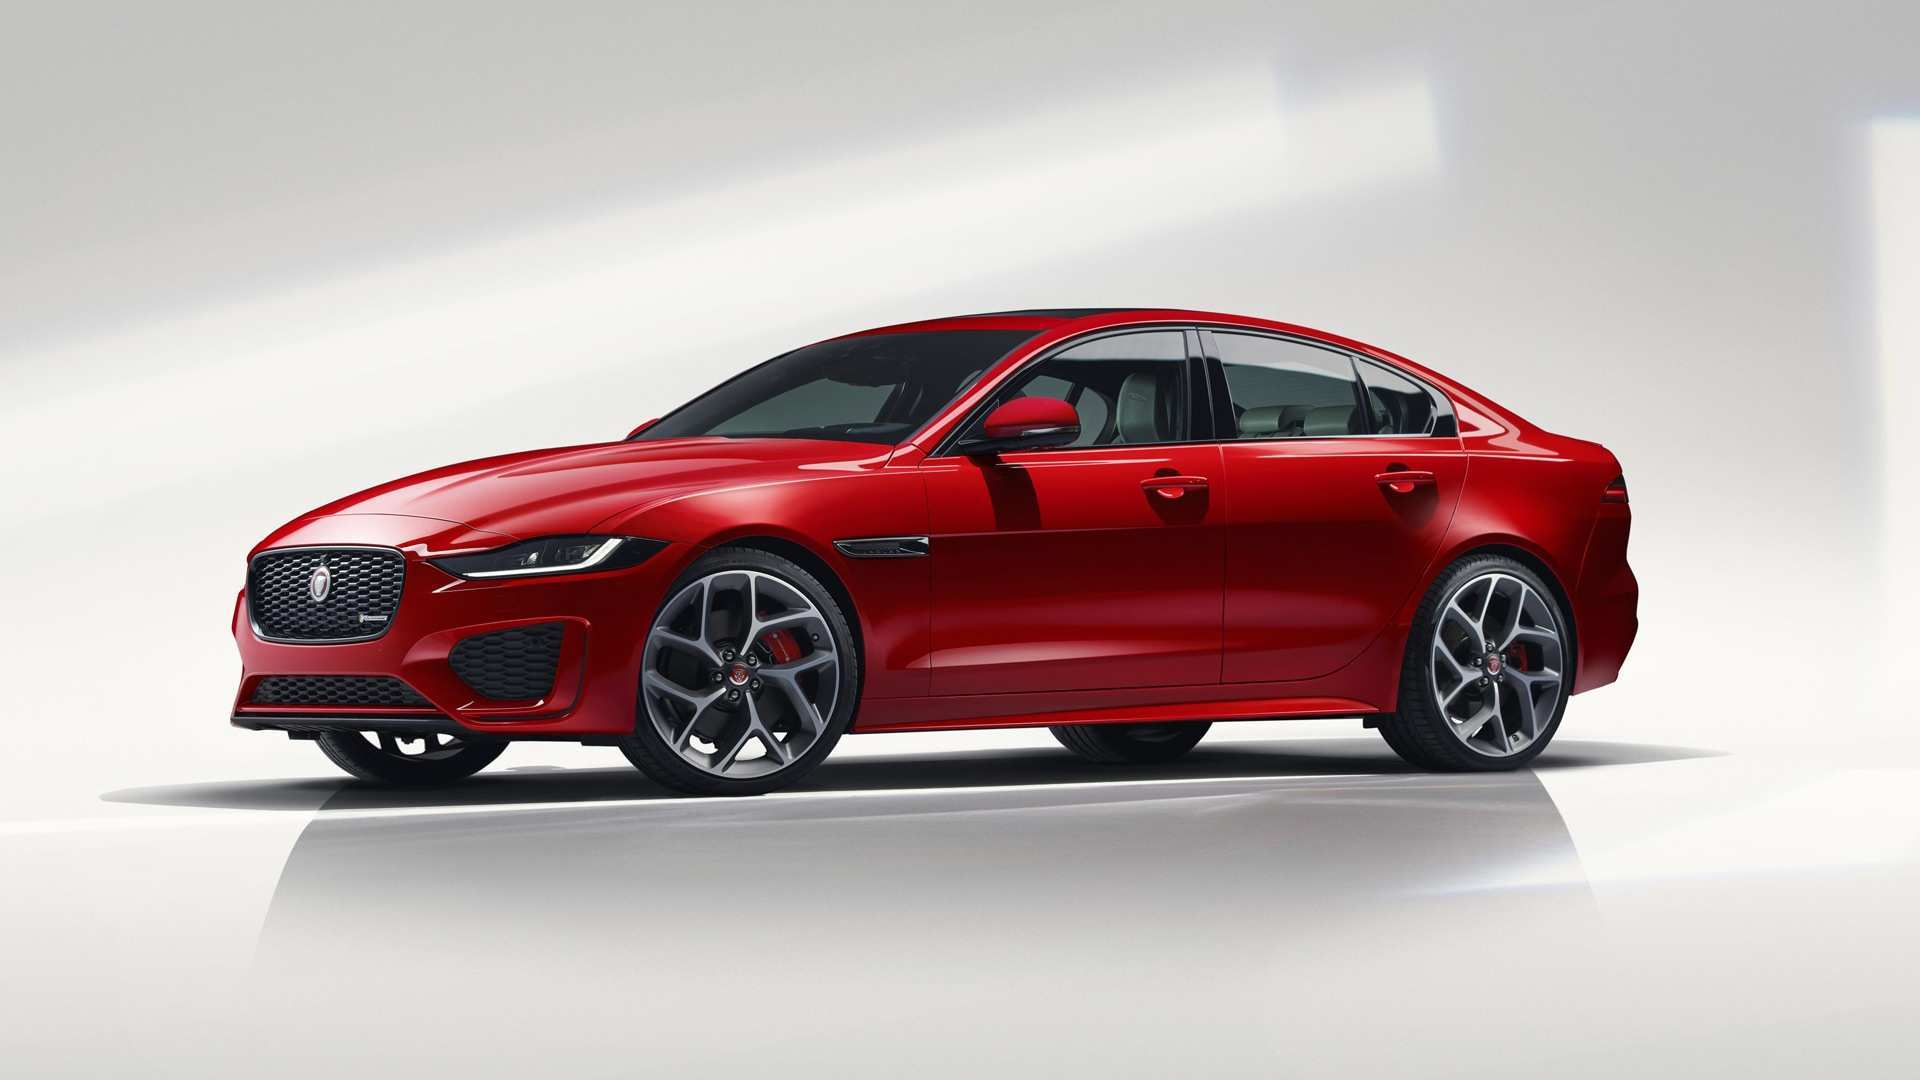 69 The Best 2020 Jaguar XE Review And Release Date